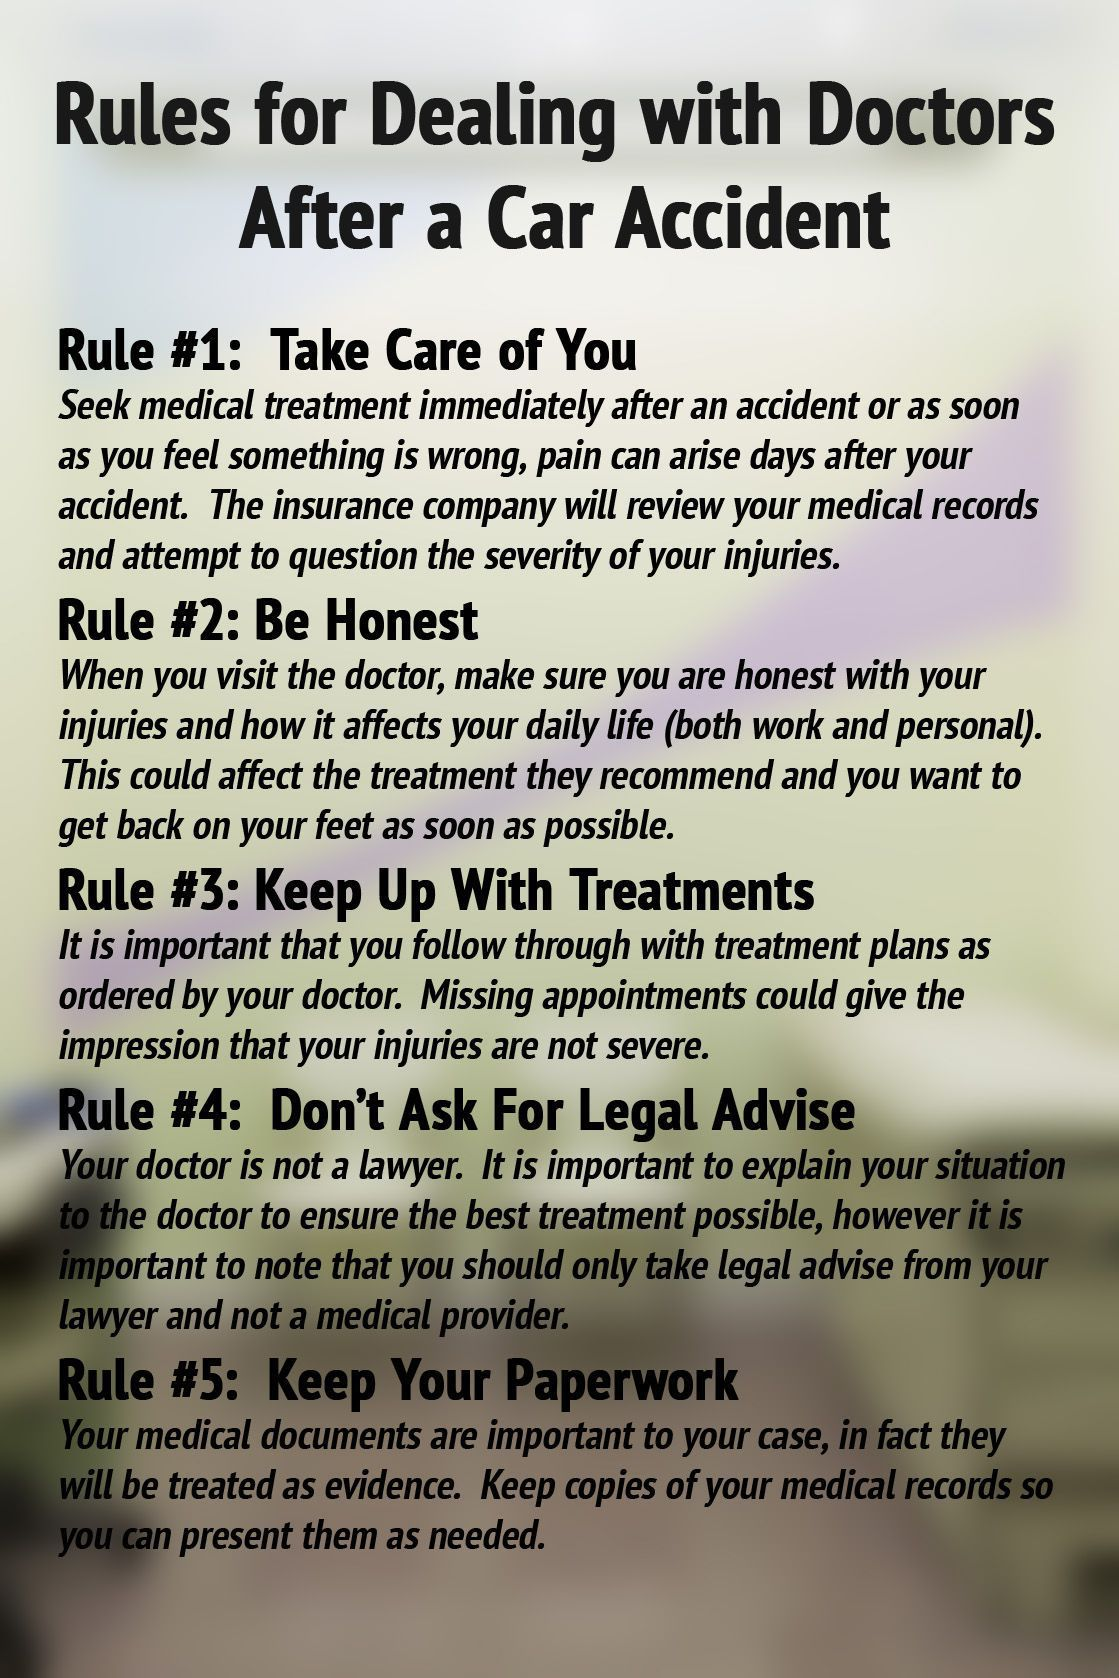 5 Rules for Dealing with Doctors after a Car Accident Image